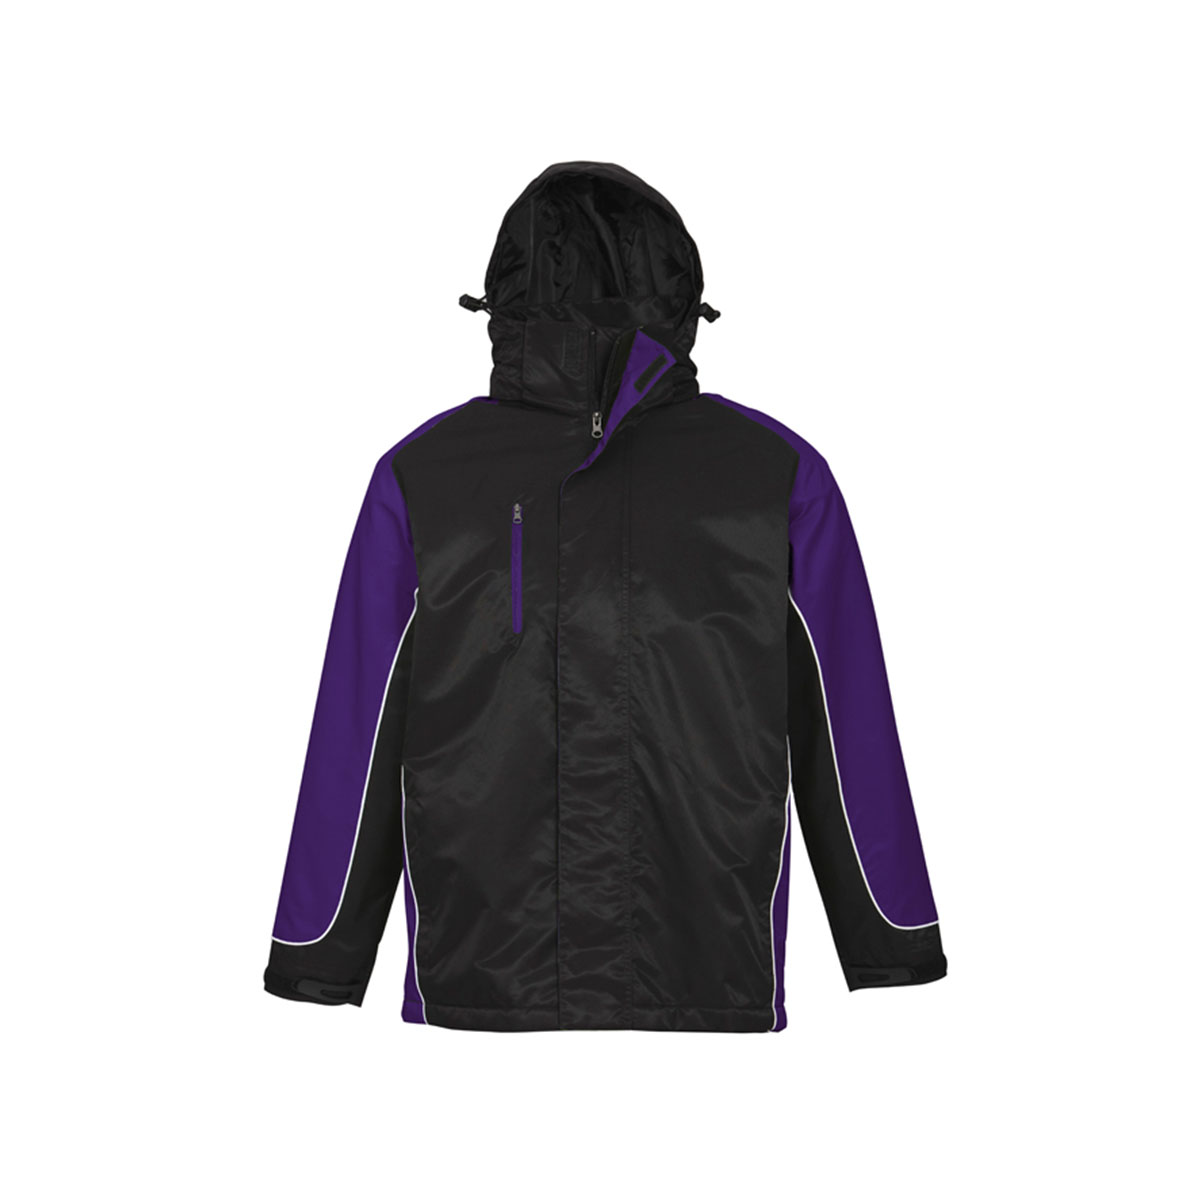 Unisex Nitro Jacket-Black / Purple / White